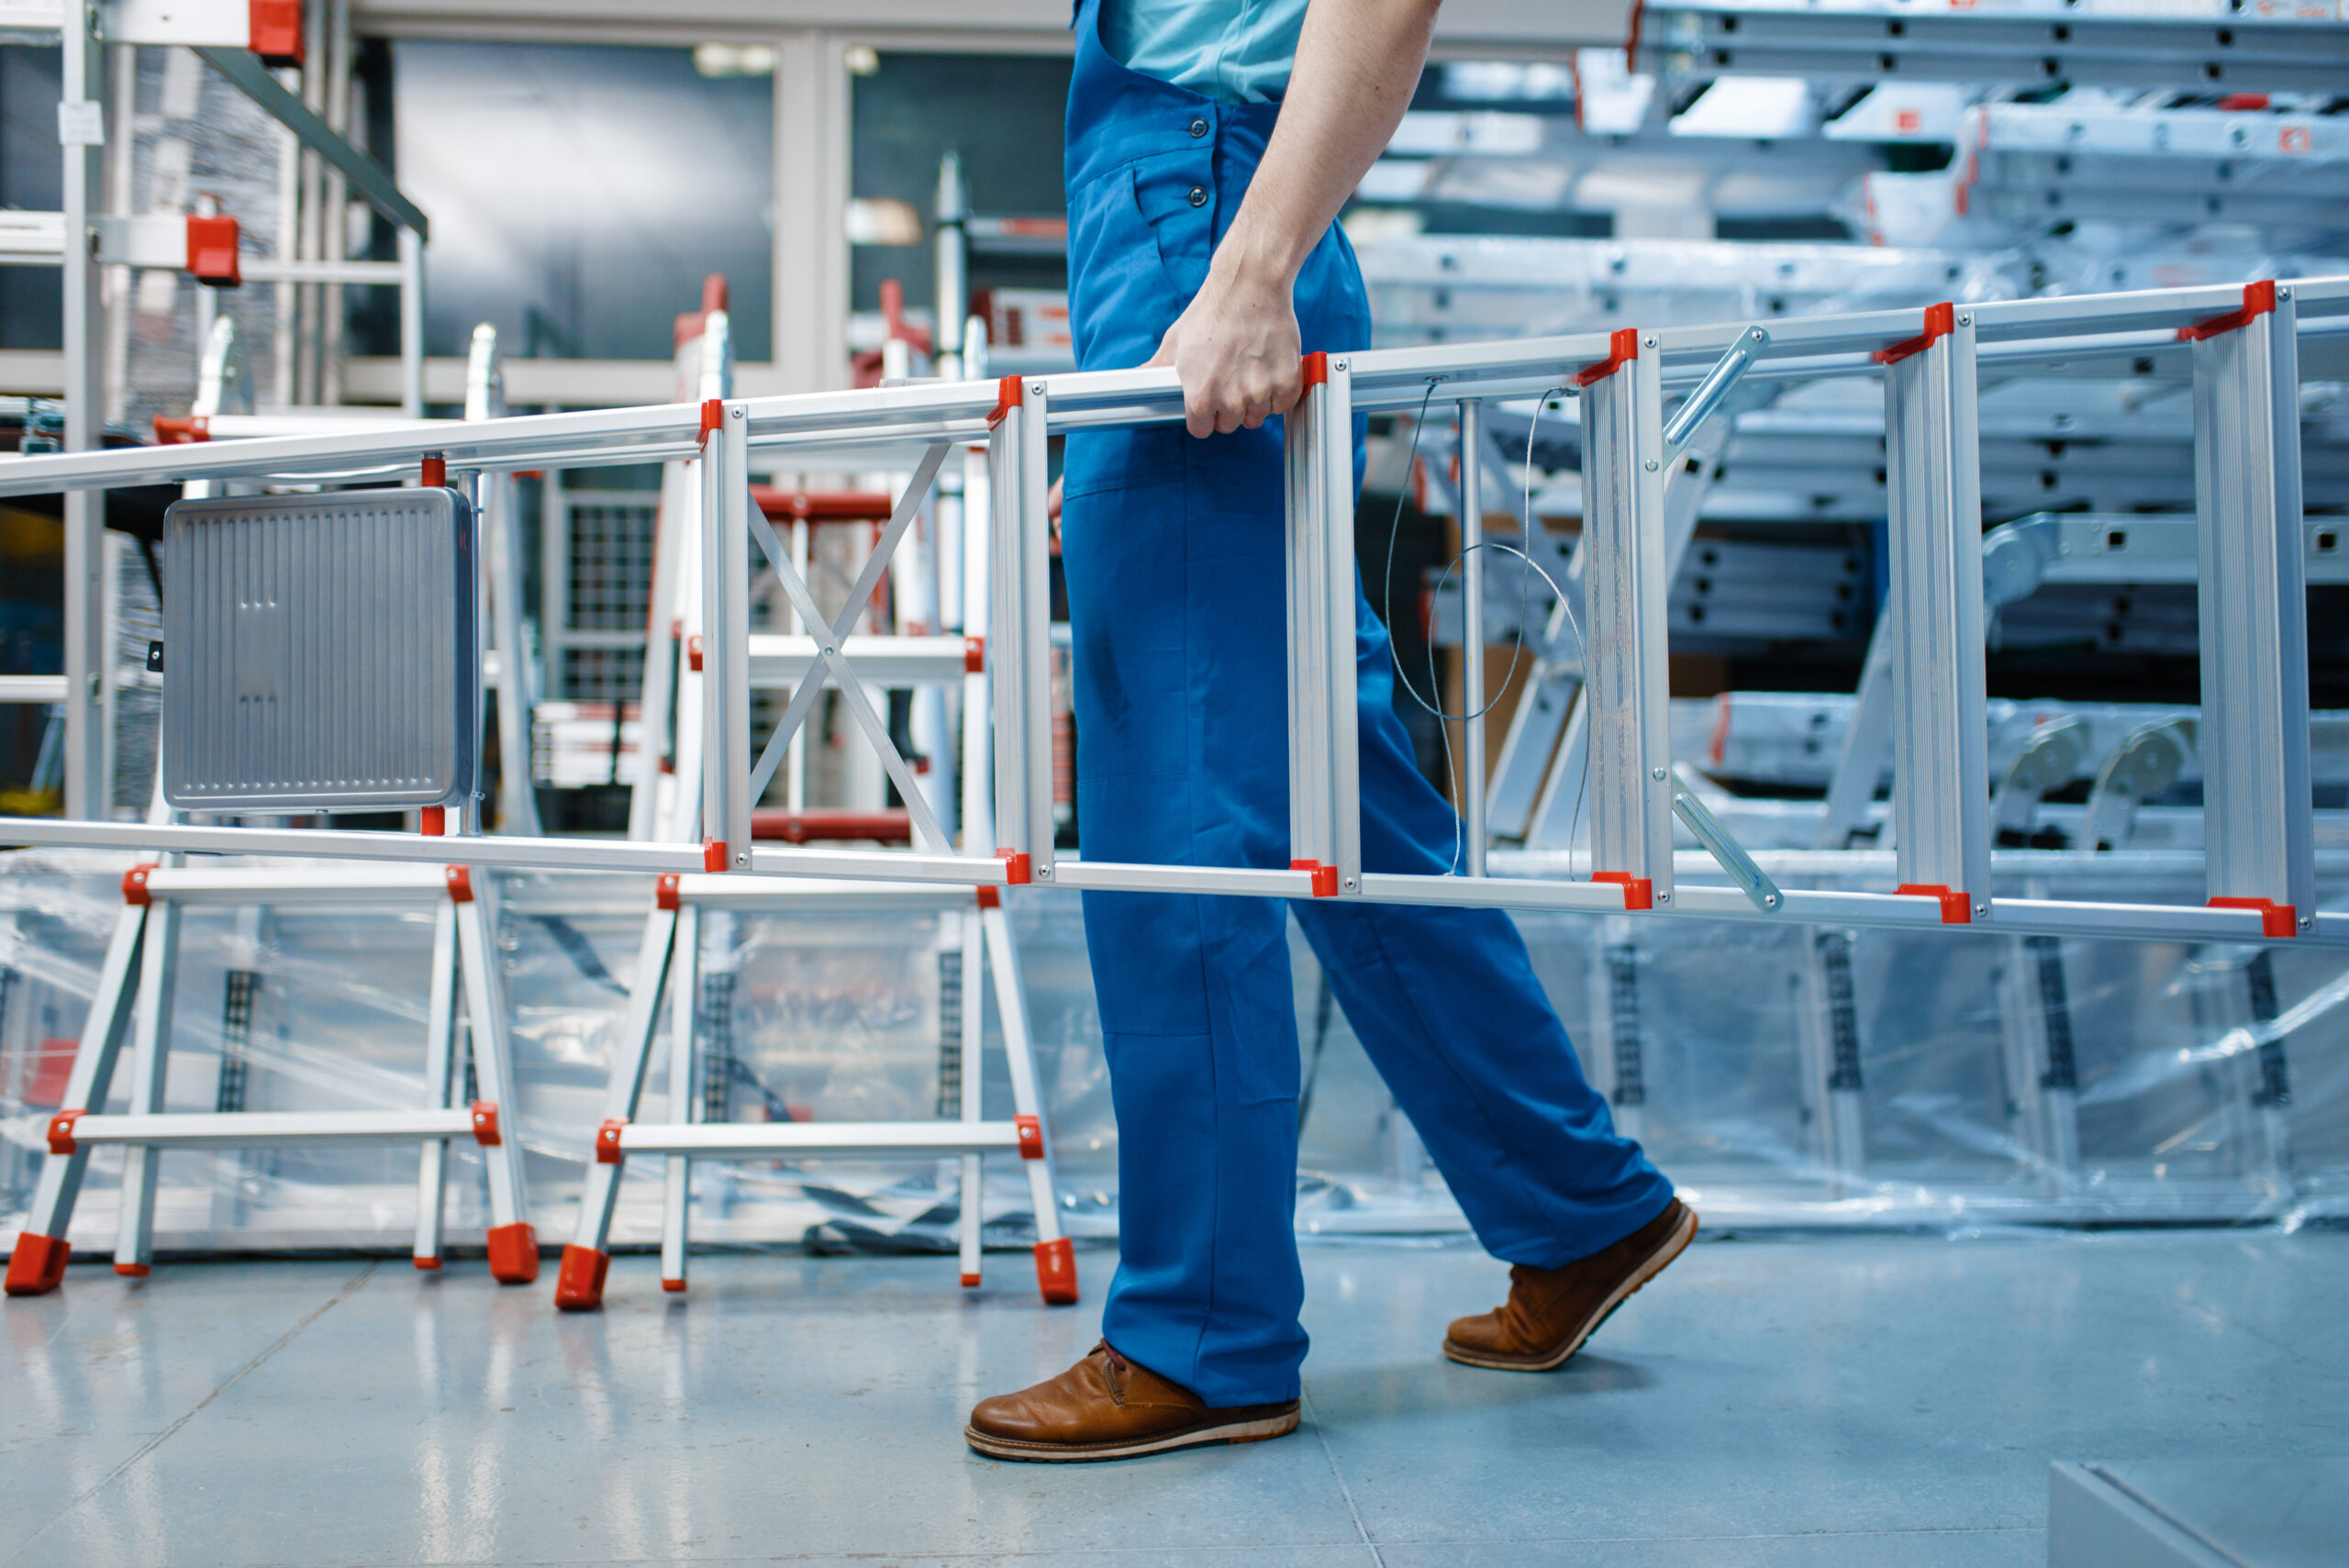 Male employee in uniform holds new aluminum stepladders in tool store. Department with ladders, choice of equipment in hardware shop, instrument supermarket